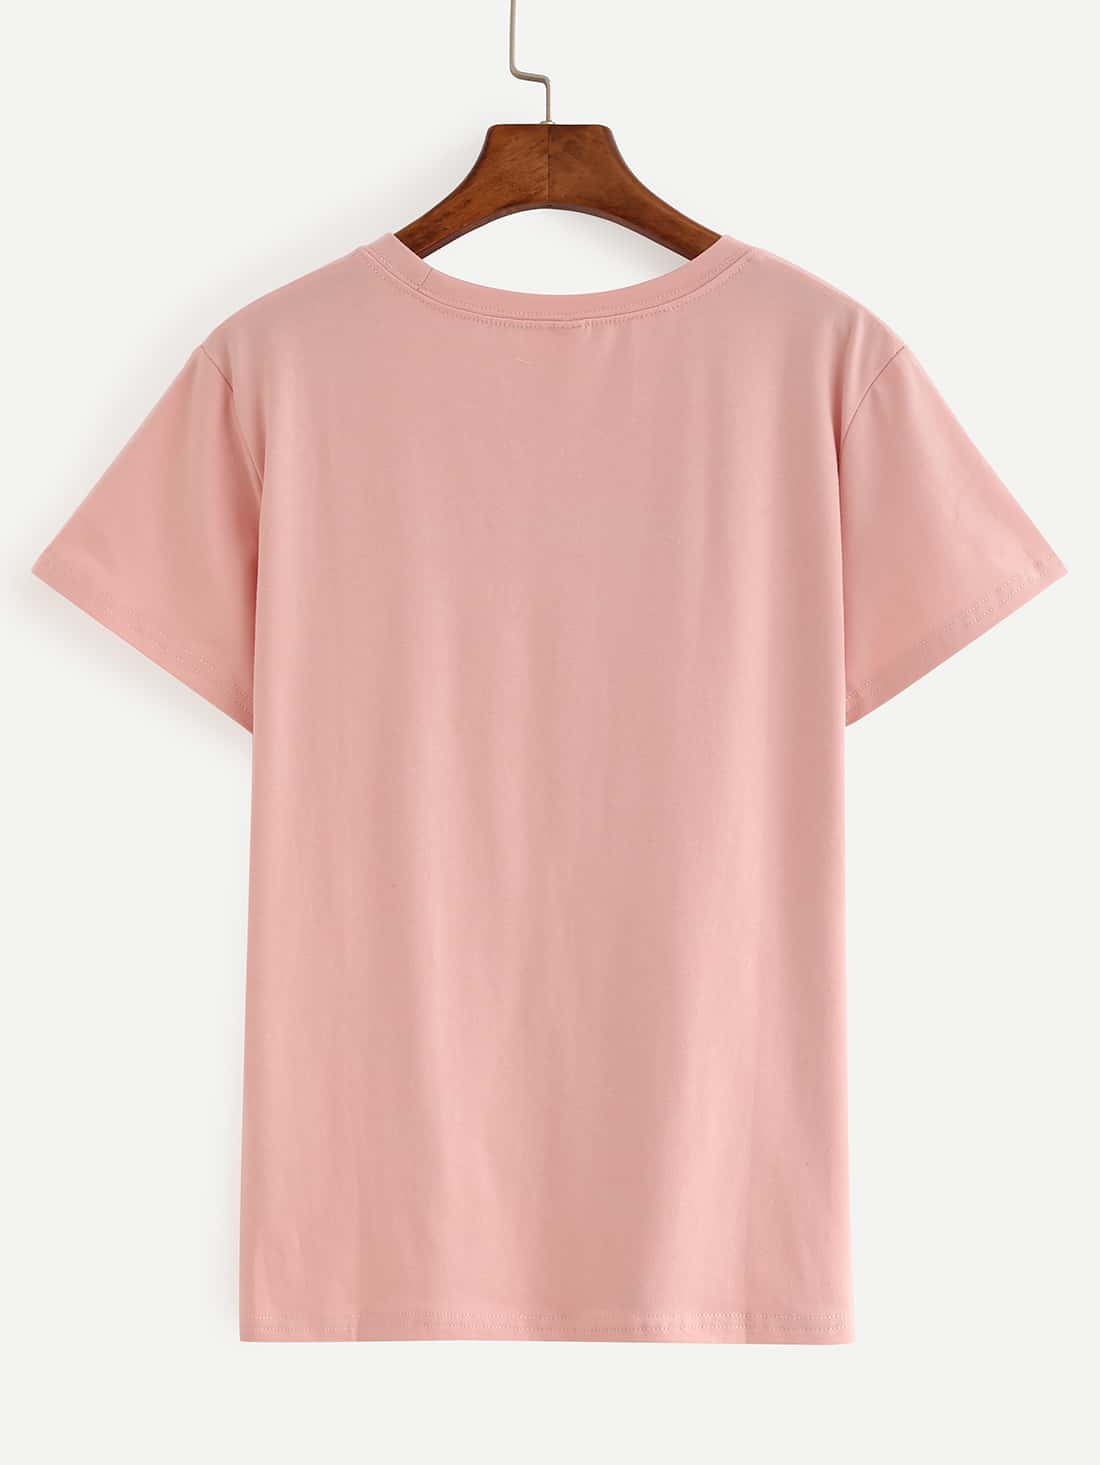 Letter print pink t shirt emmacloth women fast fashion online for Letter print t shirt